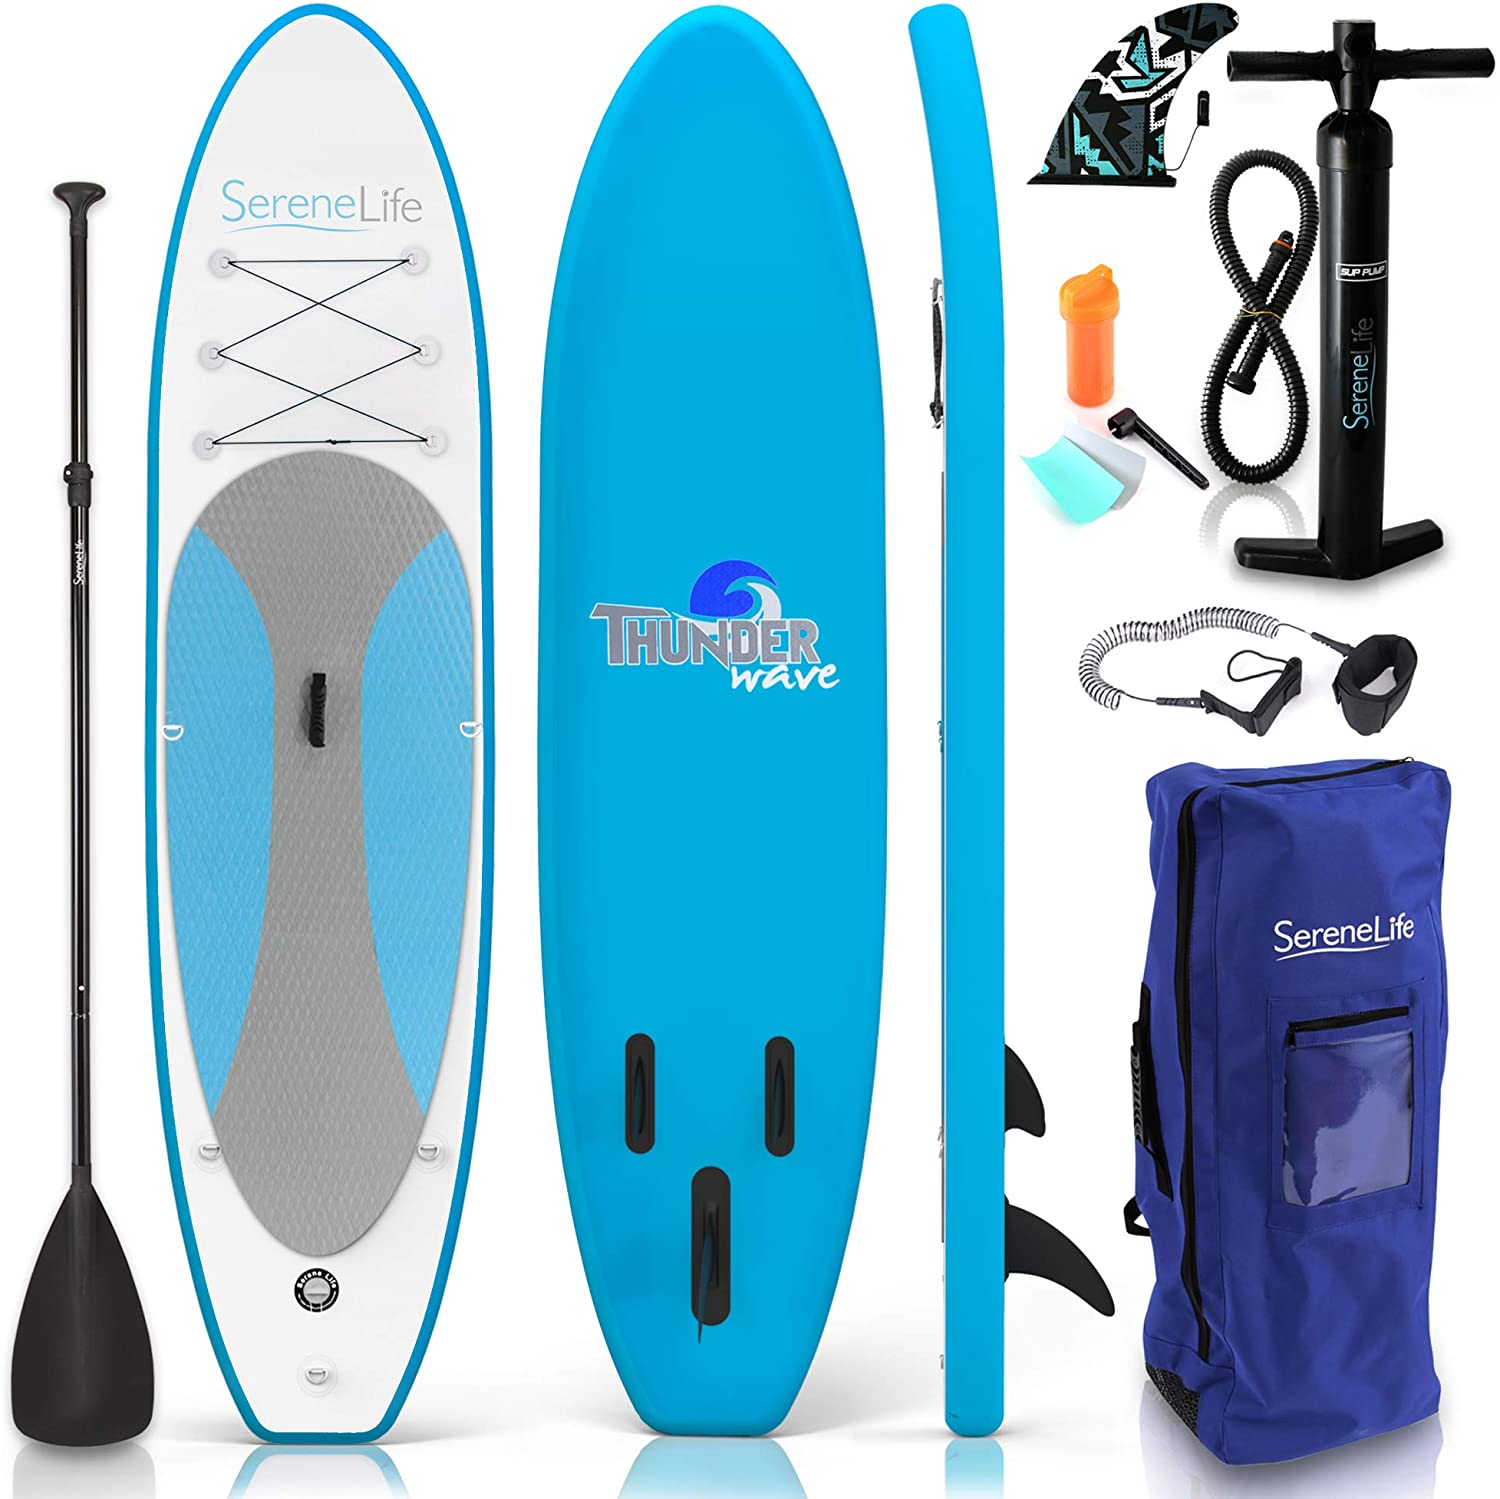 SereneLife 10ft Inflatable Stand Up Paddle Board